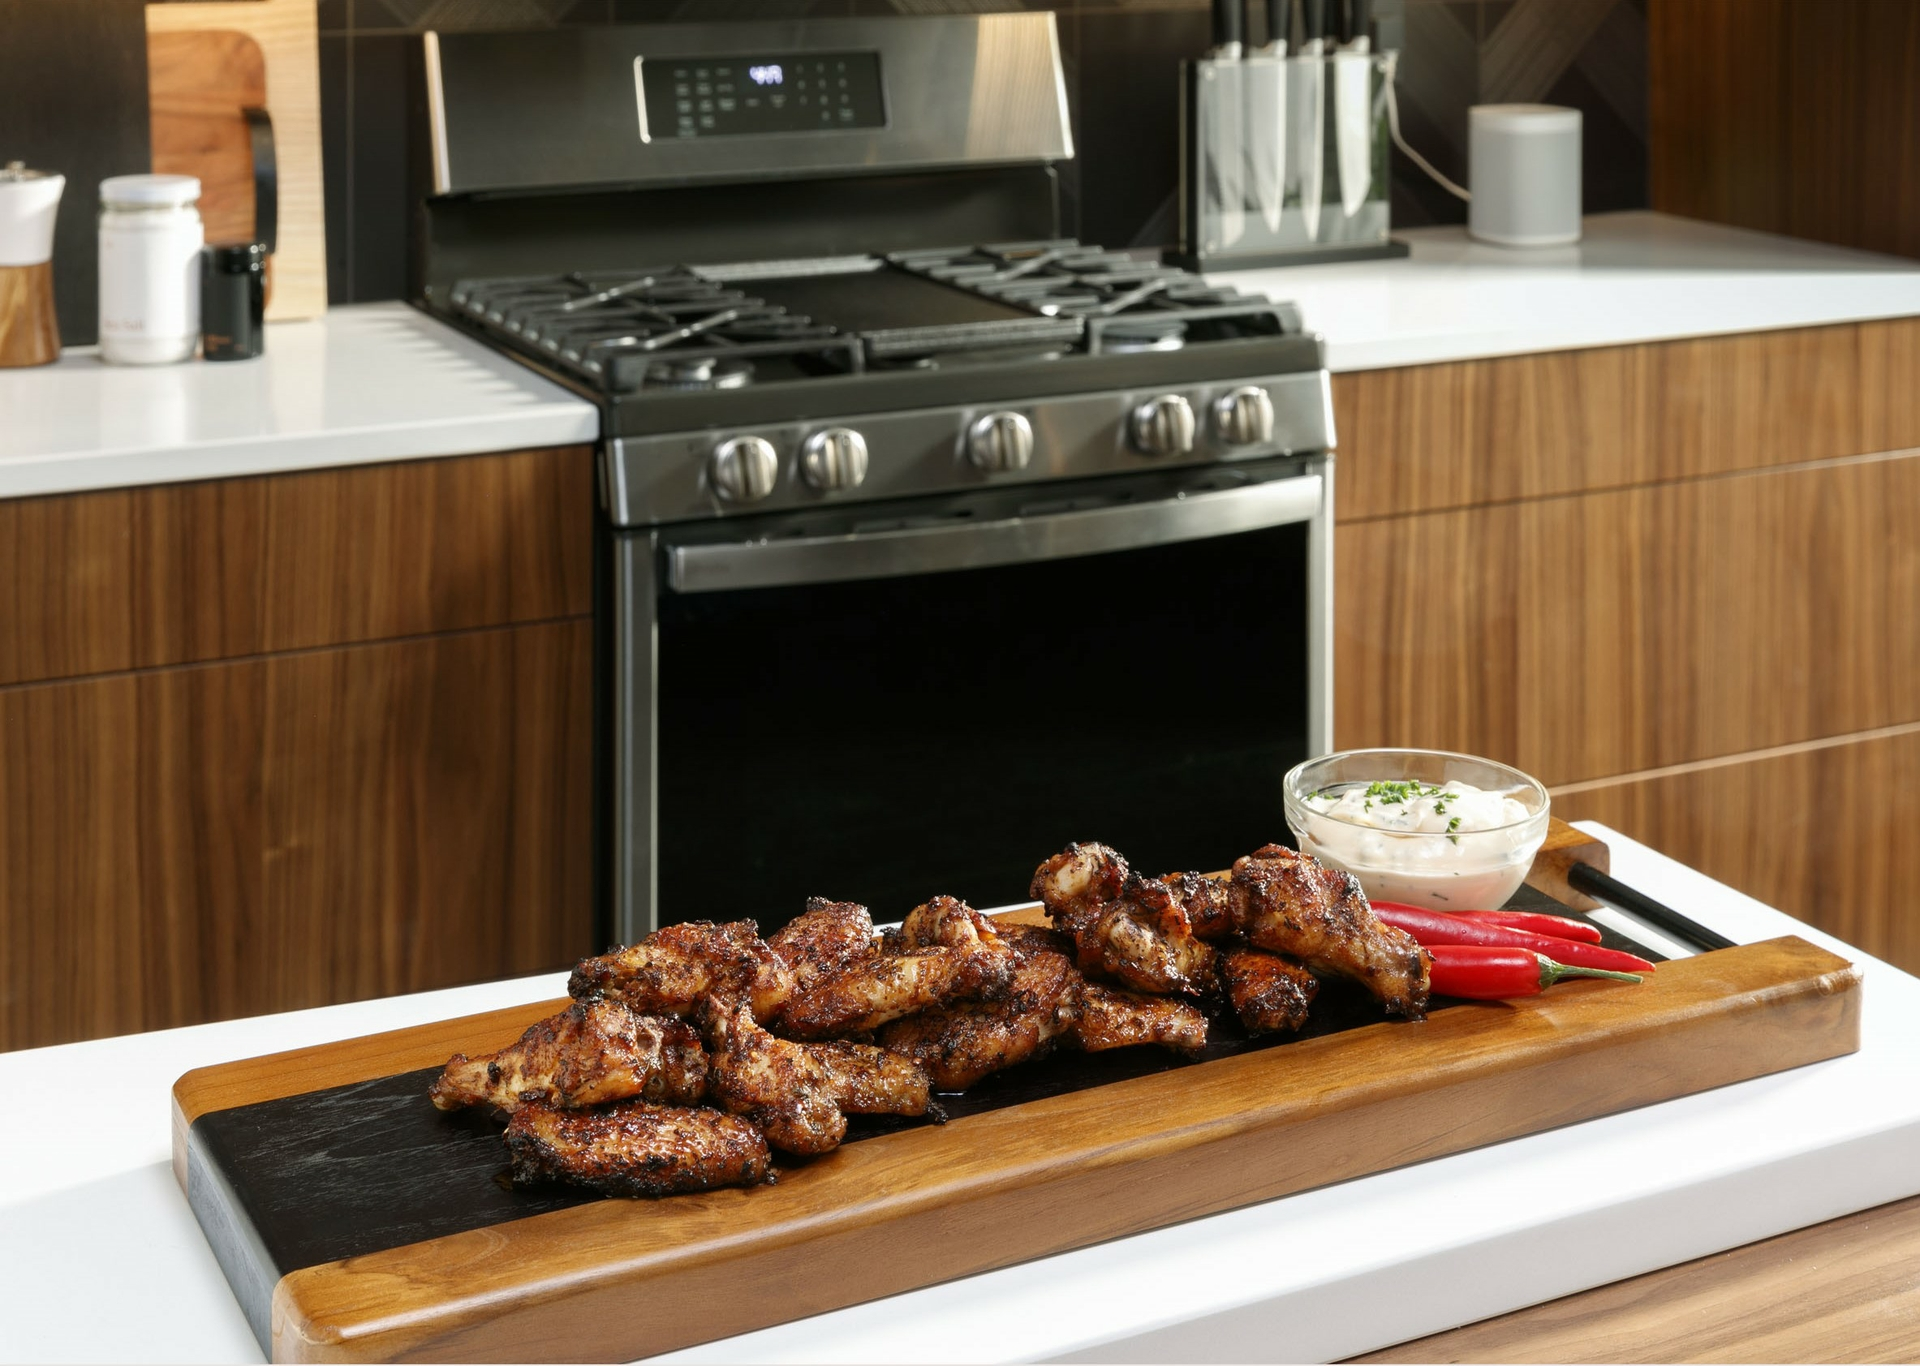 In April GE Appliances engineers successfully pushed an over-the-air software update for No-Preheat Air Fry technology to previously sold ovens and ranges with WiFi capabilities. As a result a w